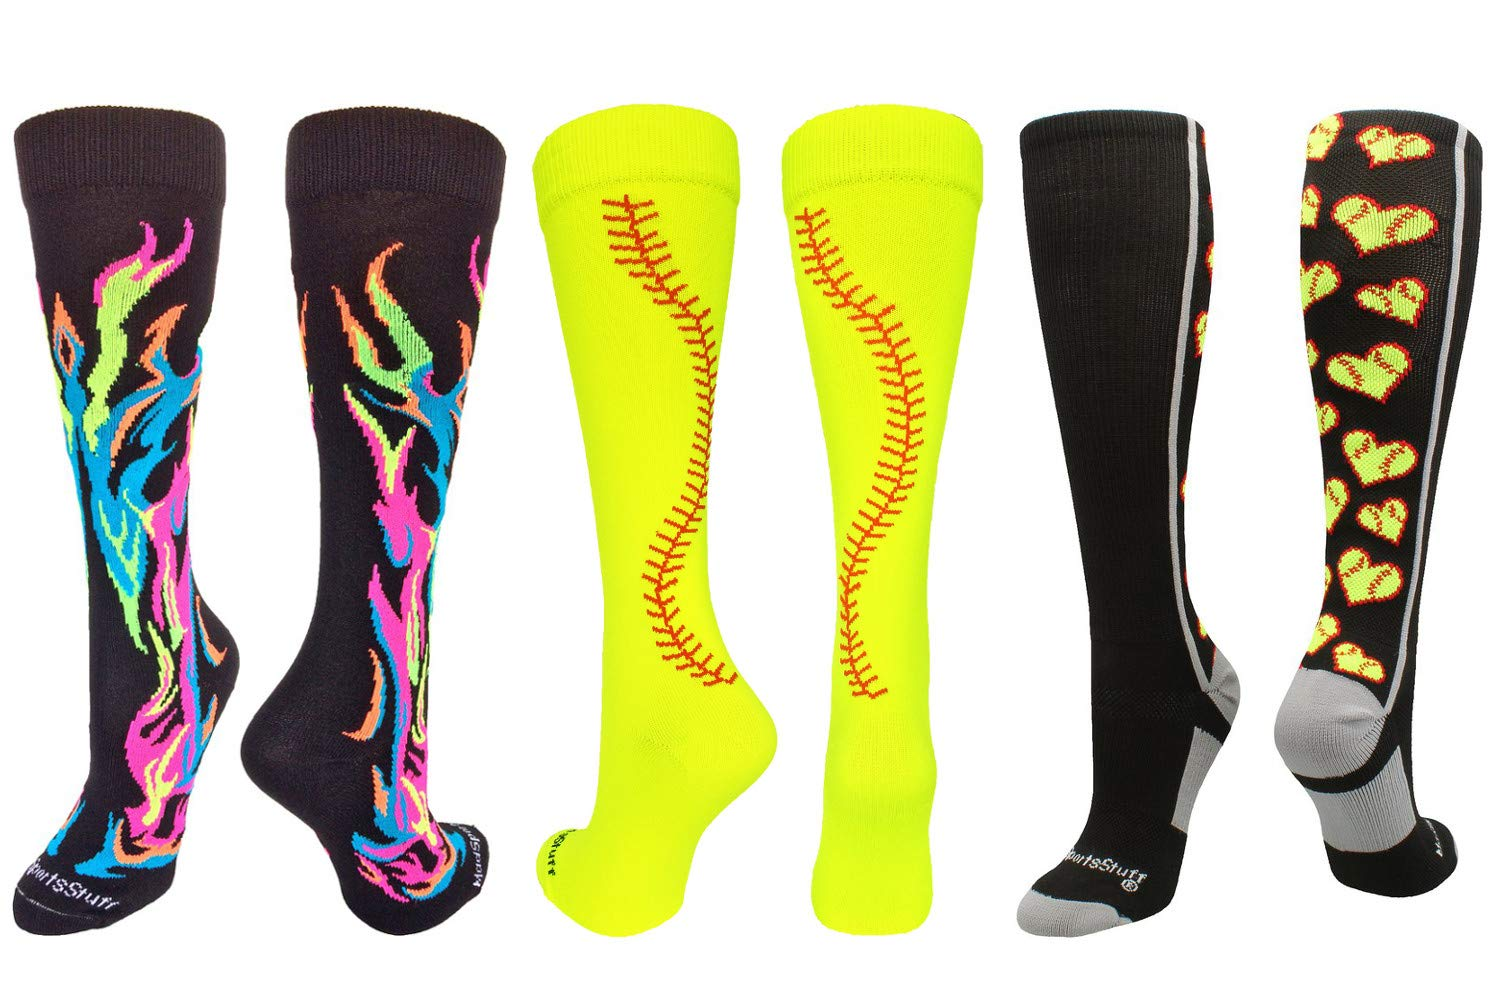 MadSportsStuff Love Softball Flame Stitch Socks Softball Pack (Softball Pack-Multi, Small)